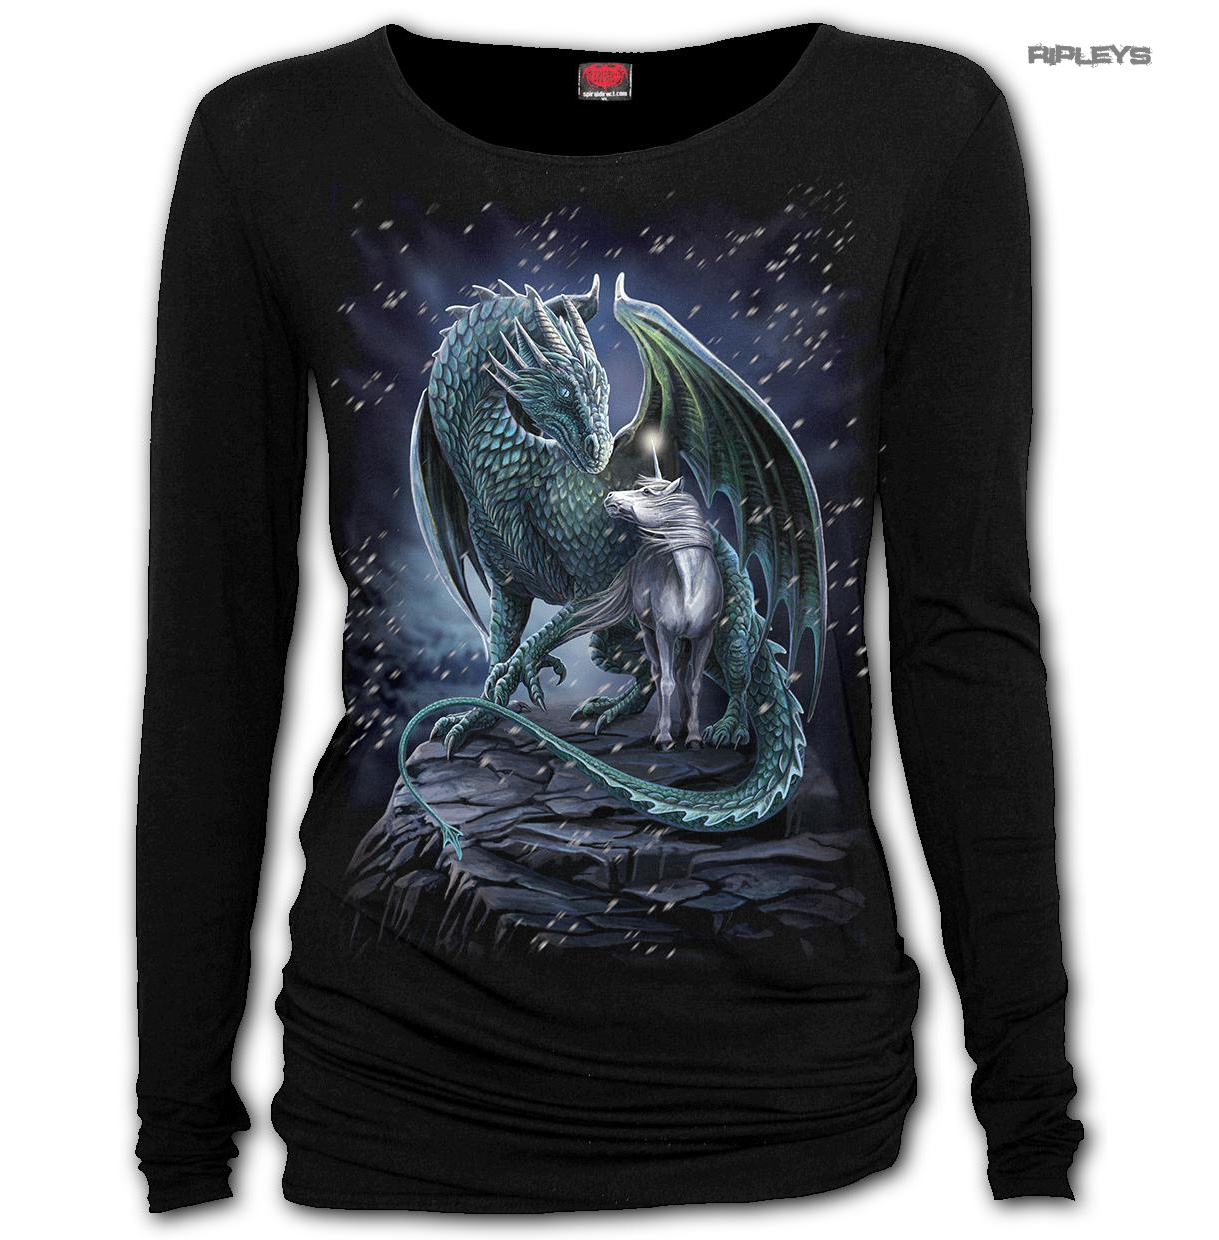 Spiral-Ladies-Gothic-Unicorn-Dragon-PROTECTOR-OF-MAGIC-L-Sleeve-Top-All-Sizes thumbnail 2